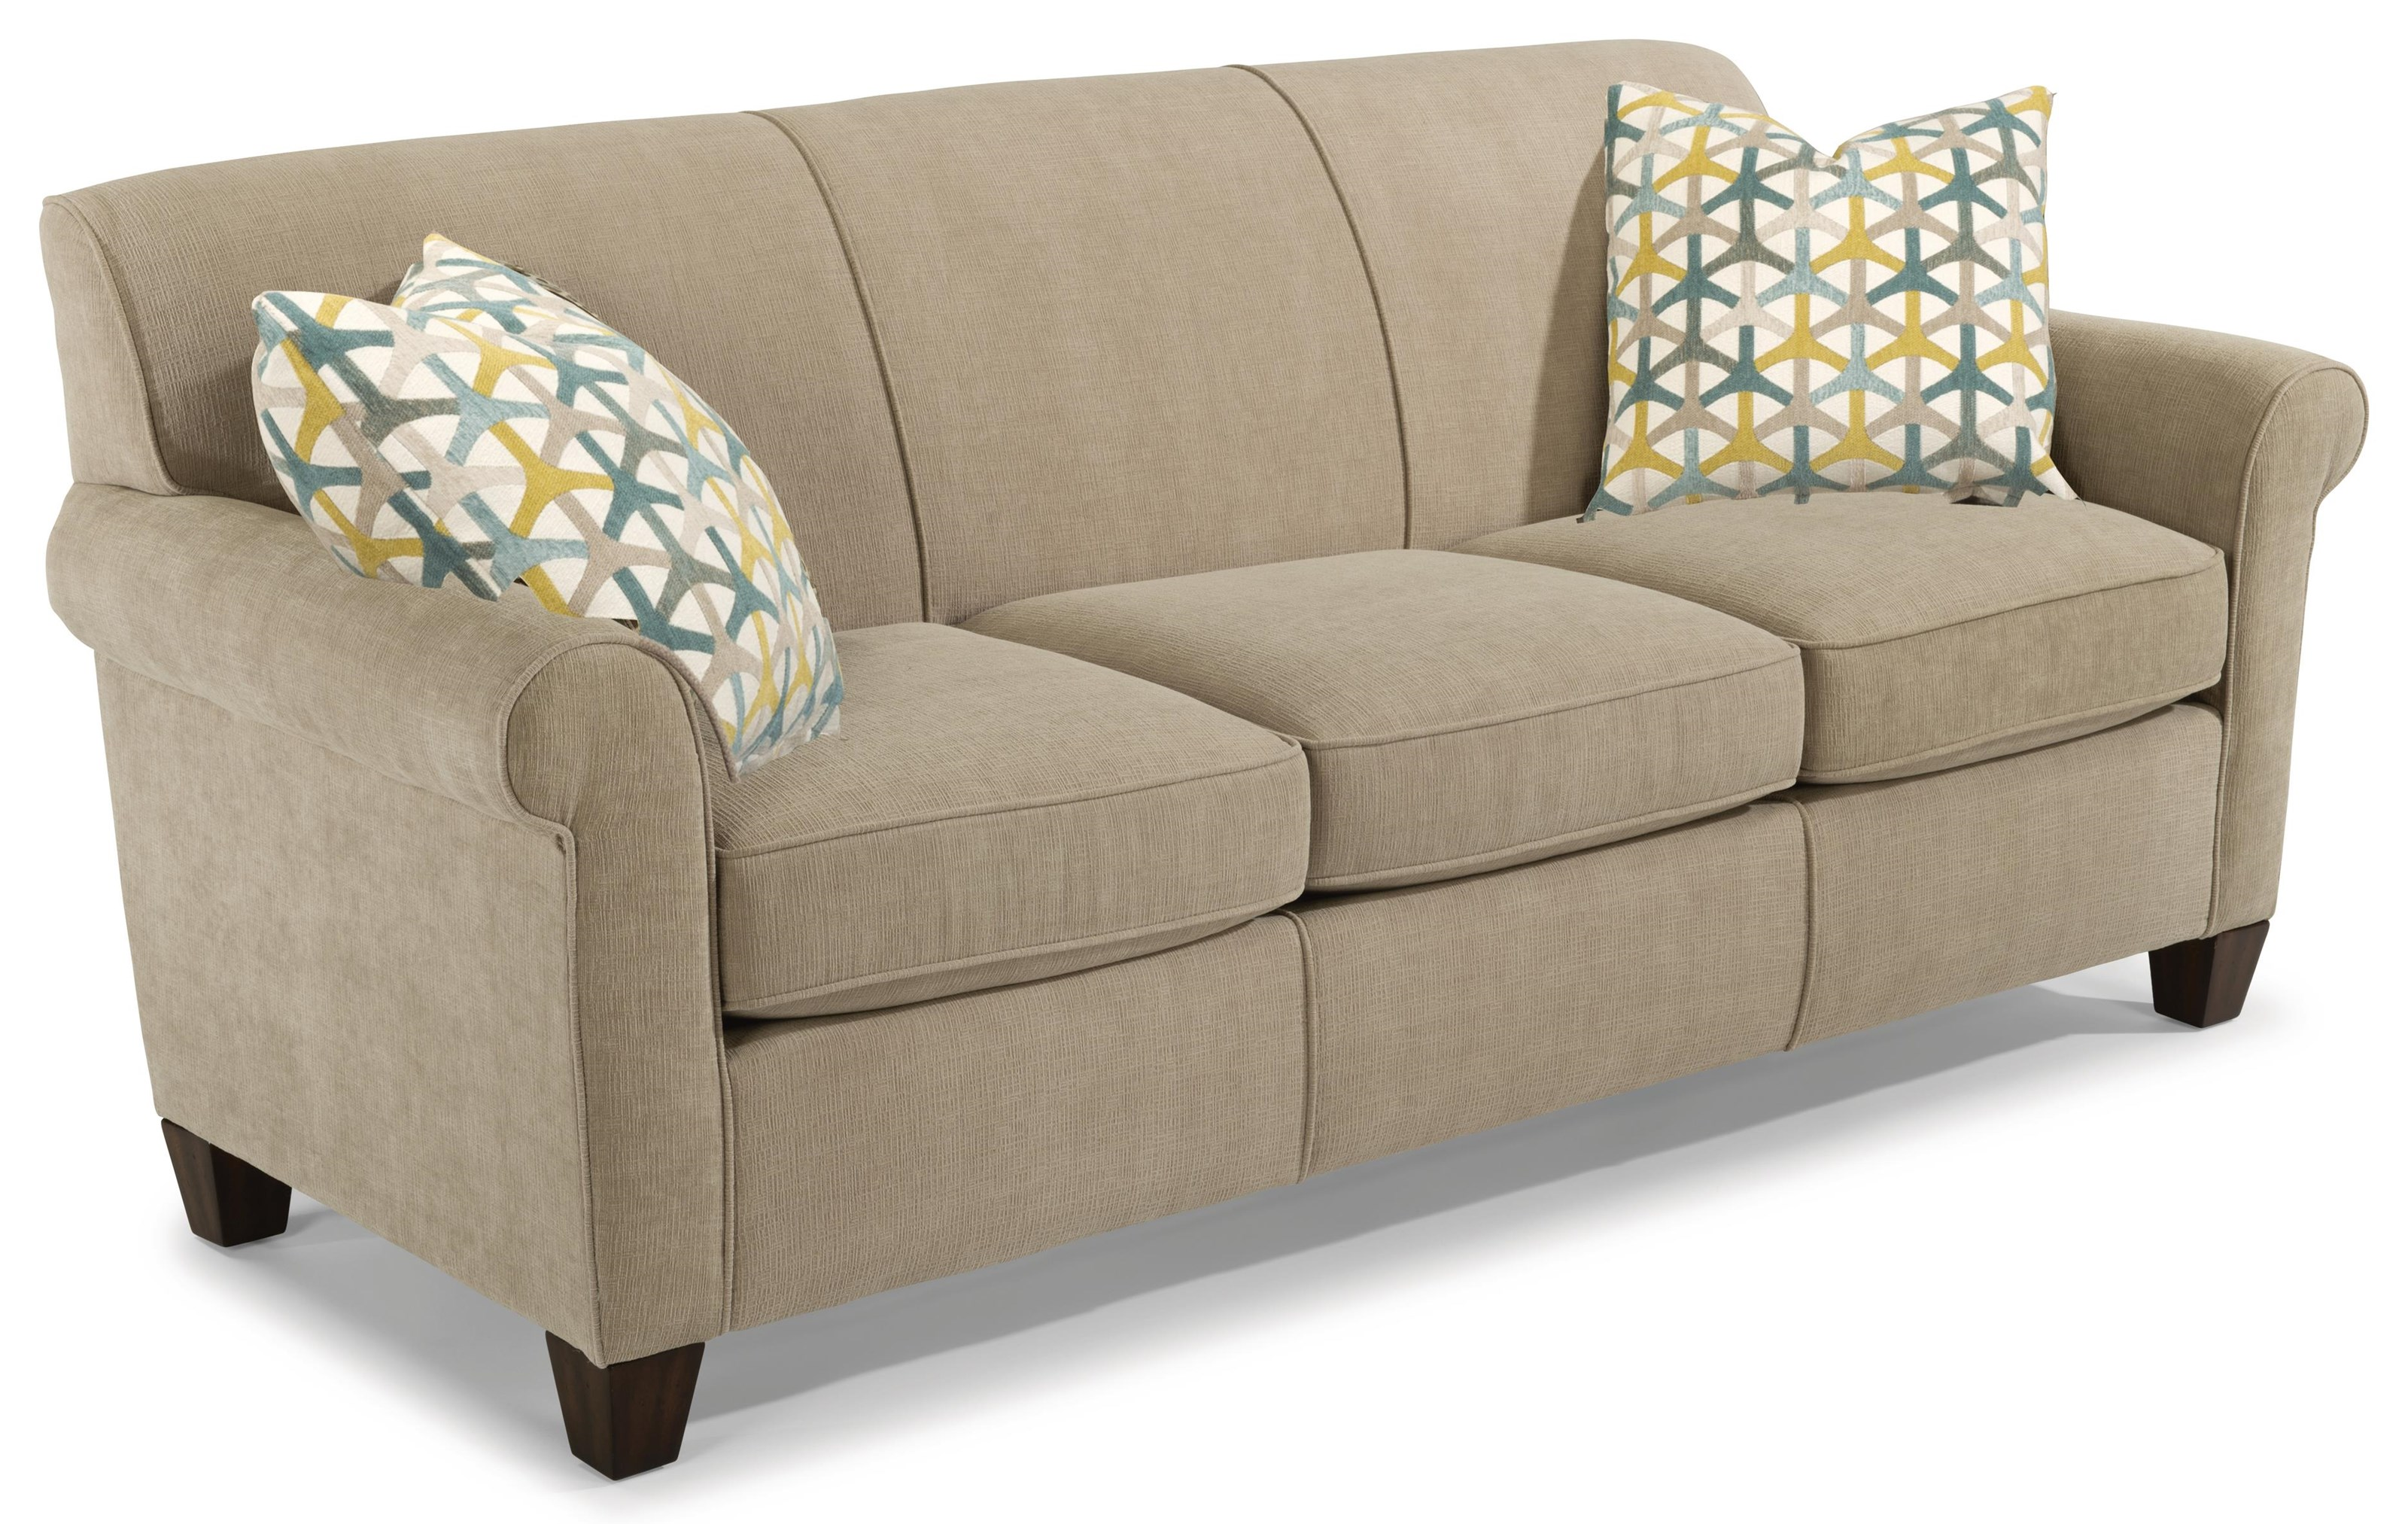 Flexsteel Dana Sofa Flexsteel Venture Sofa Harris Family